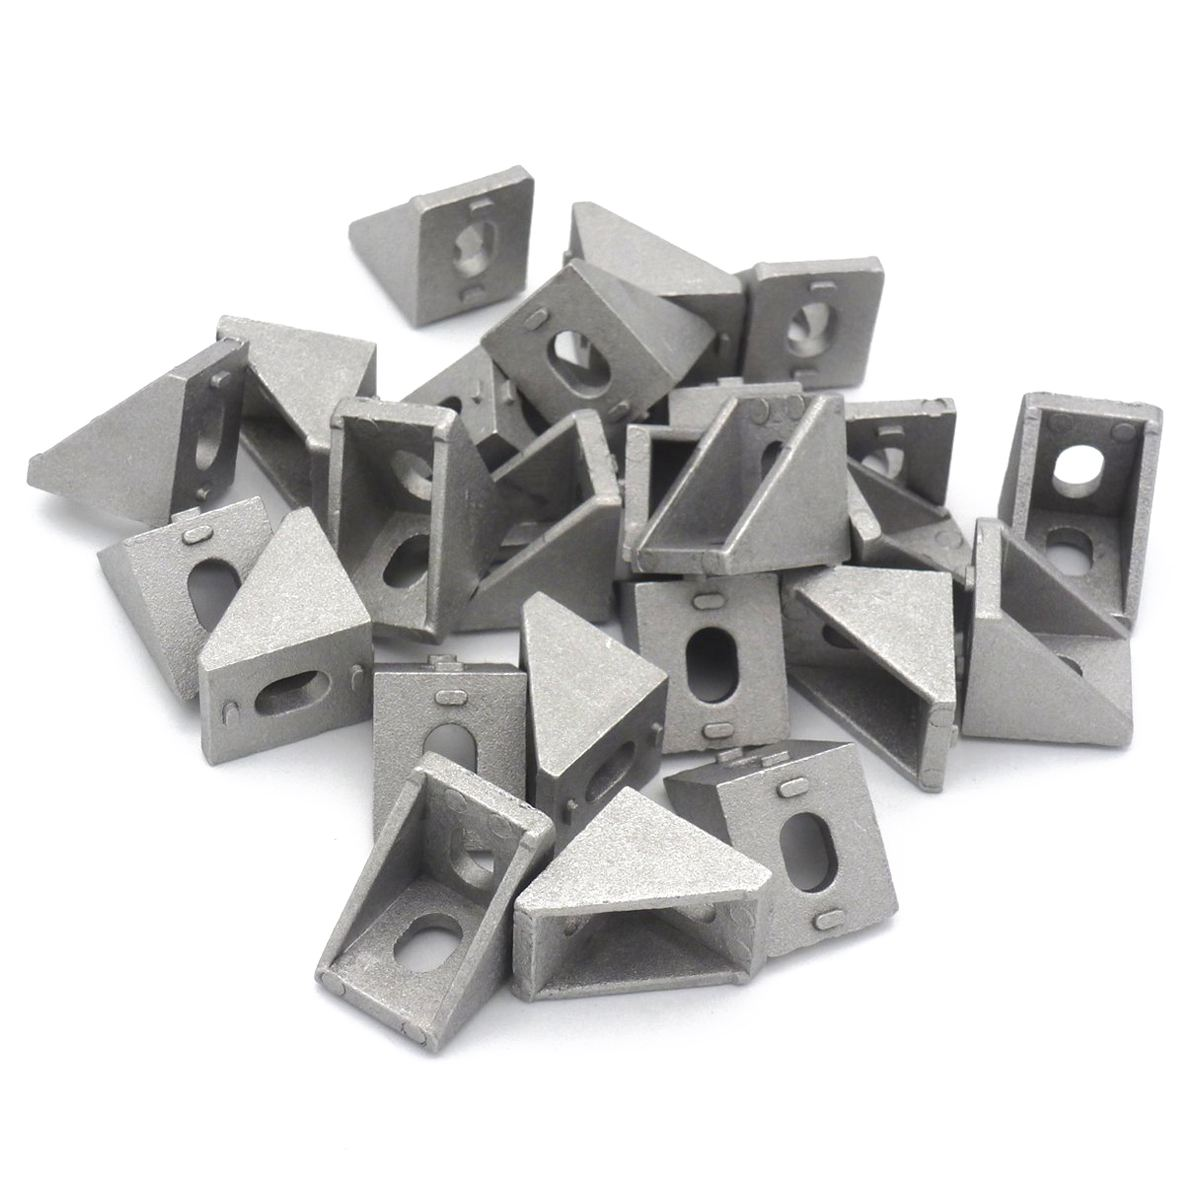 2020 Corner Bracket for 20mm Extrusion Size 20x20x17mm Pack of 25 2020 corner bracket corner bracket 2020 corner - title=